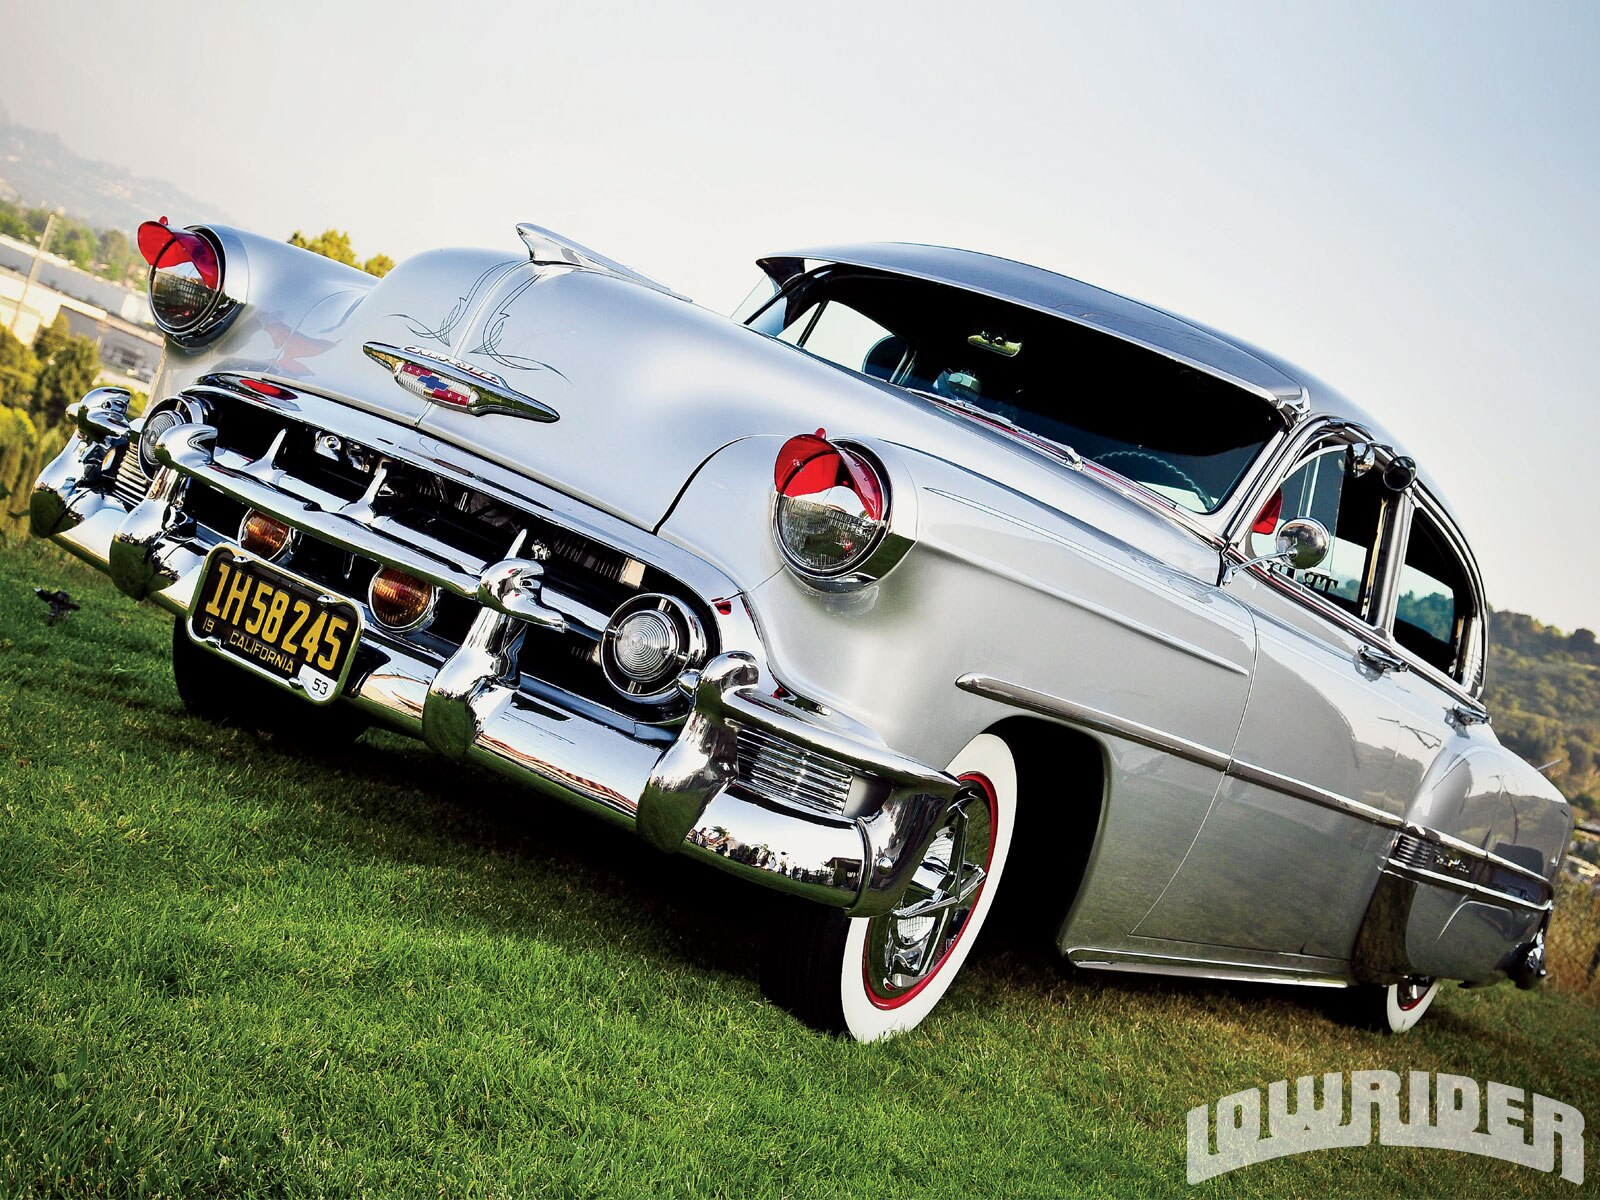 lrmp_1012_01_o-1953_chevrolet_bel_air-front_view4